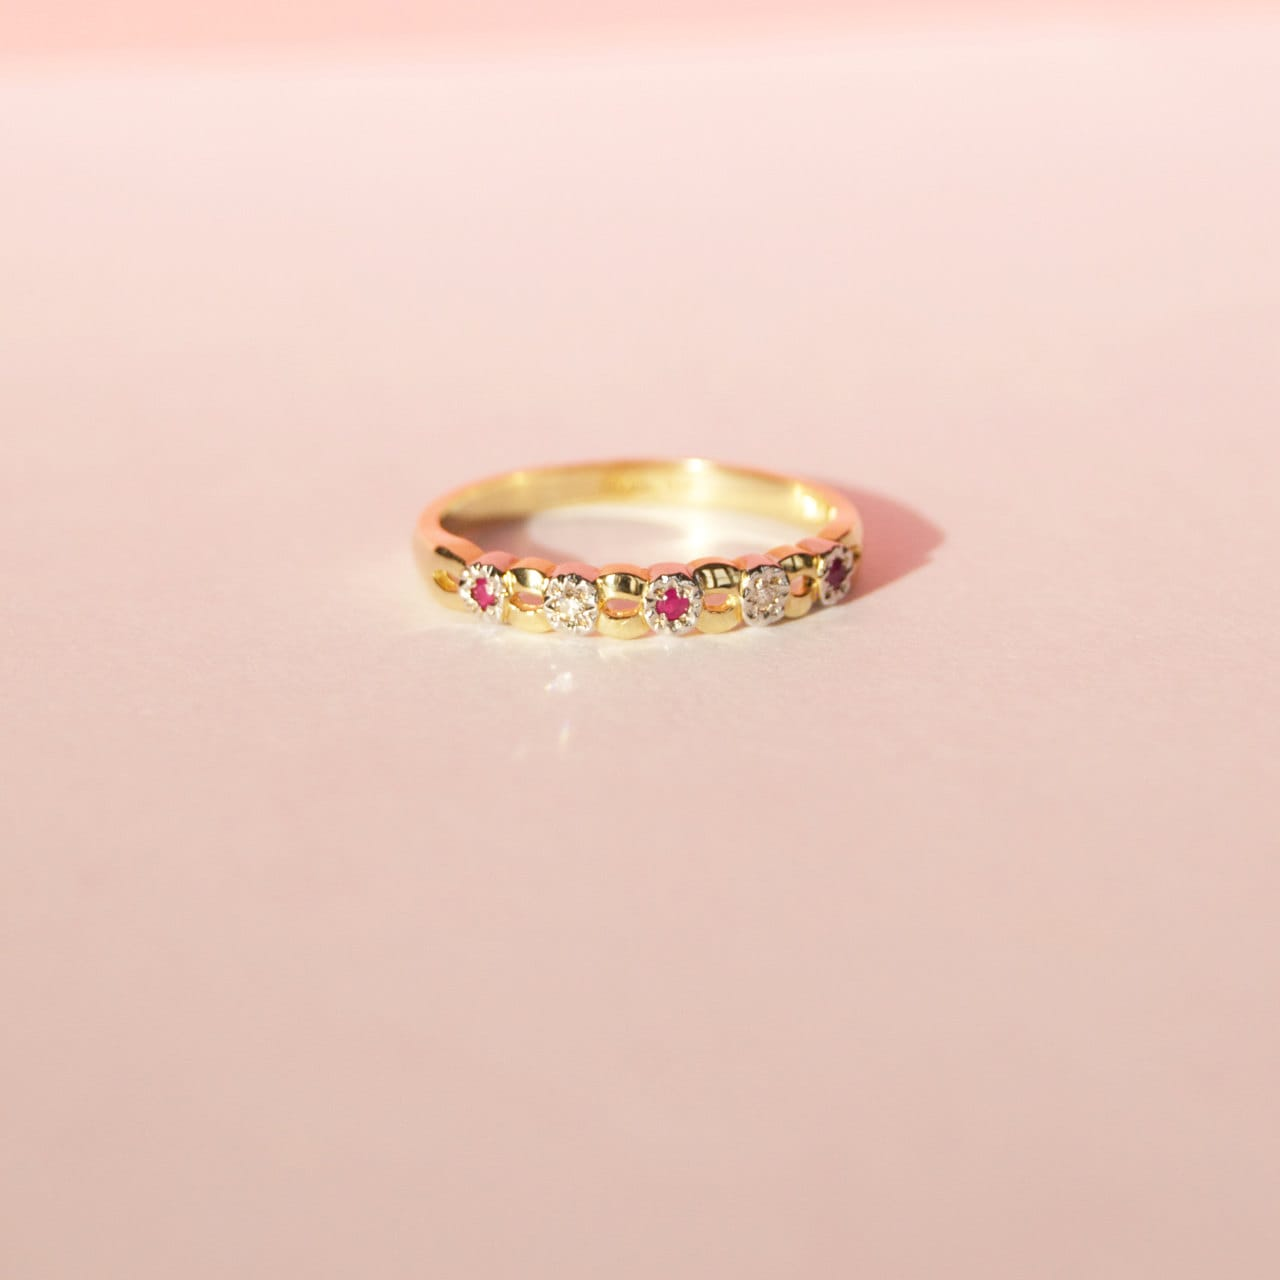 Diamond antique ring 9ct gold ring diamond and ruby ring